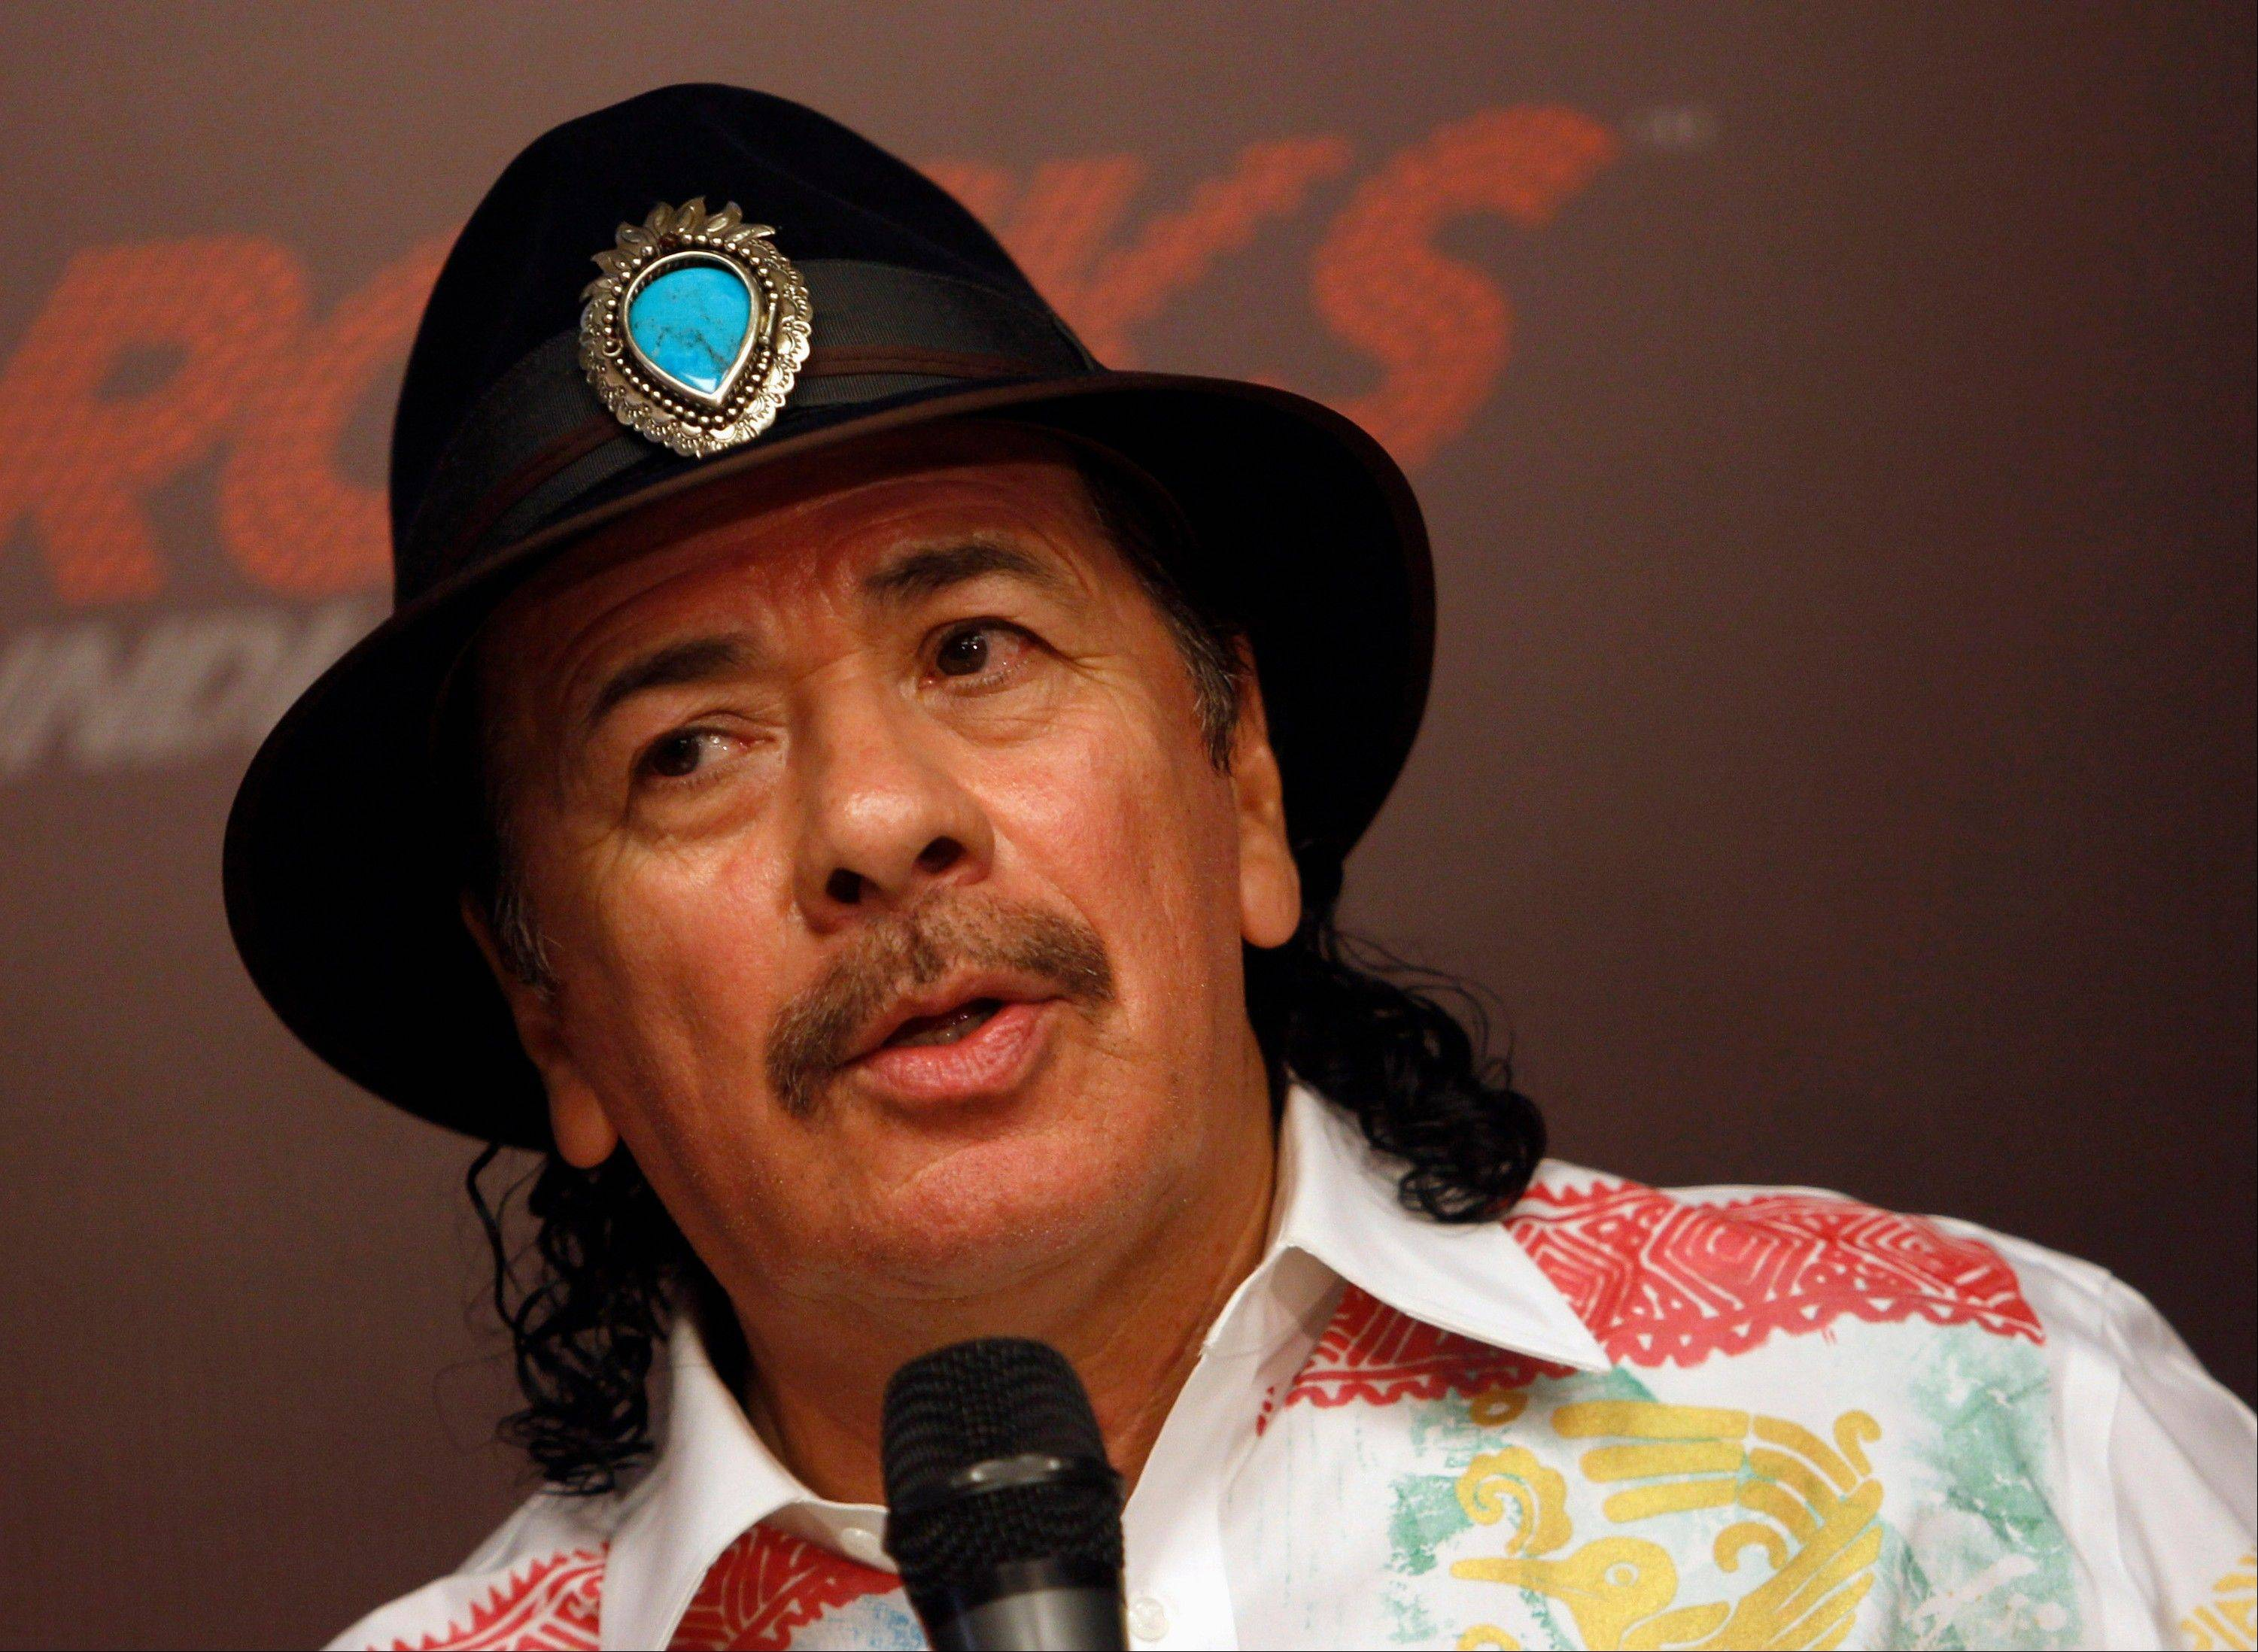 Musician Carlos Santana along with Billy Joel, jazz artist Herbie Hancock, opera star Martina Arroyo and actress Shirley MacLaine will receive this year�s Kennedy Center Honors.